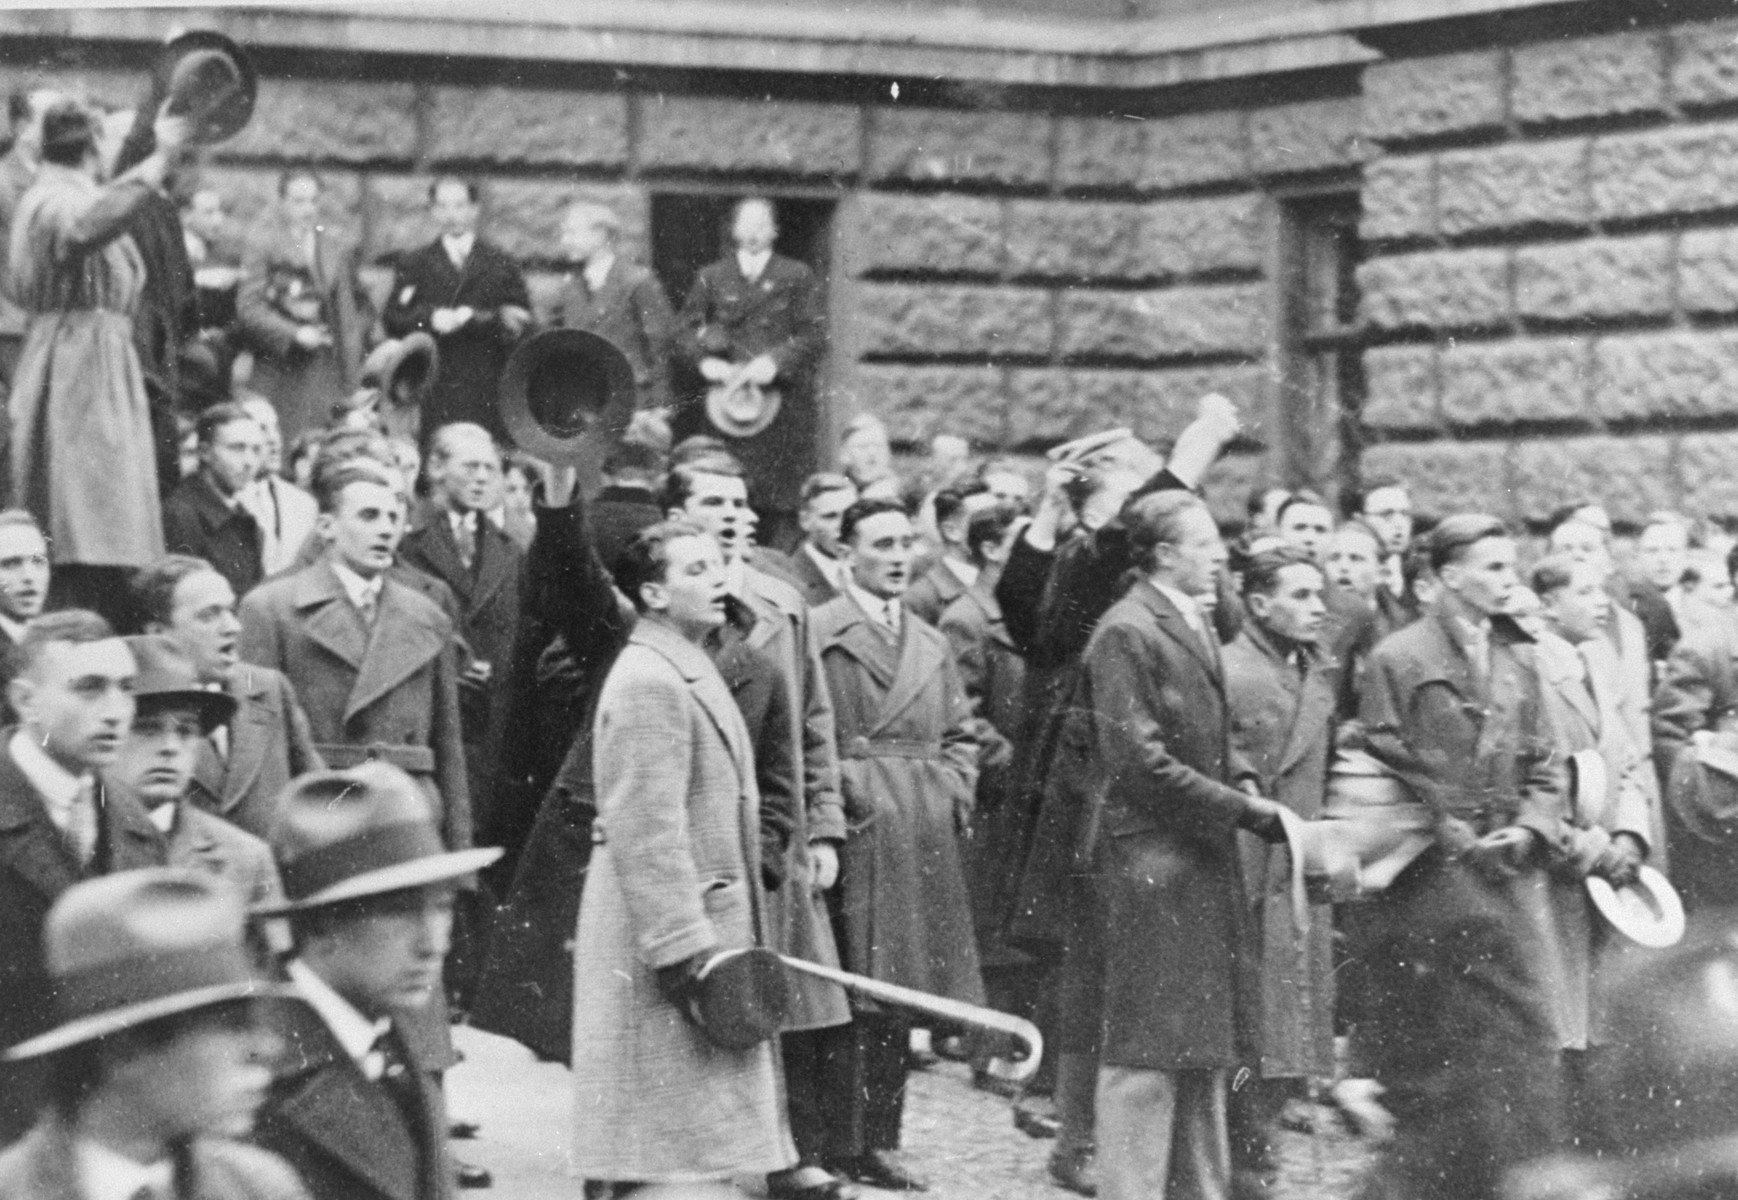 Students riot at the University of Vienna  after Nazi attempt to prevent Jews from entering the university.